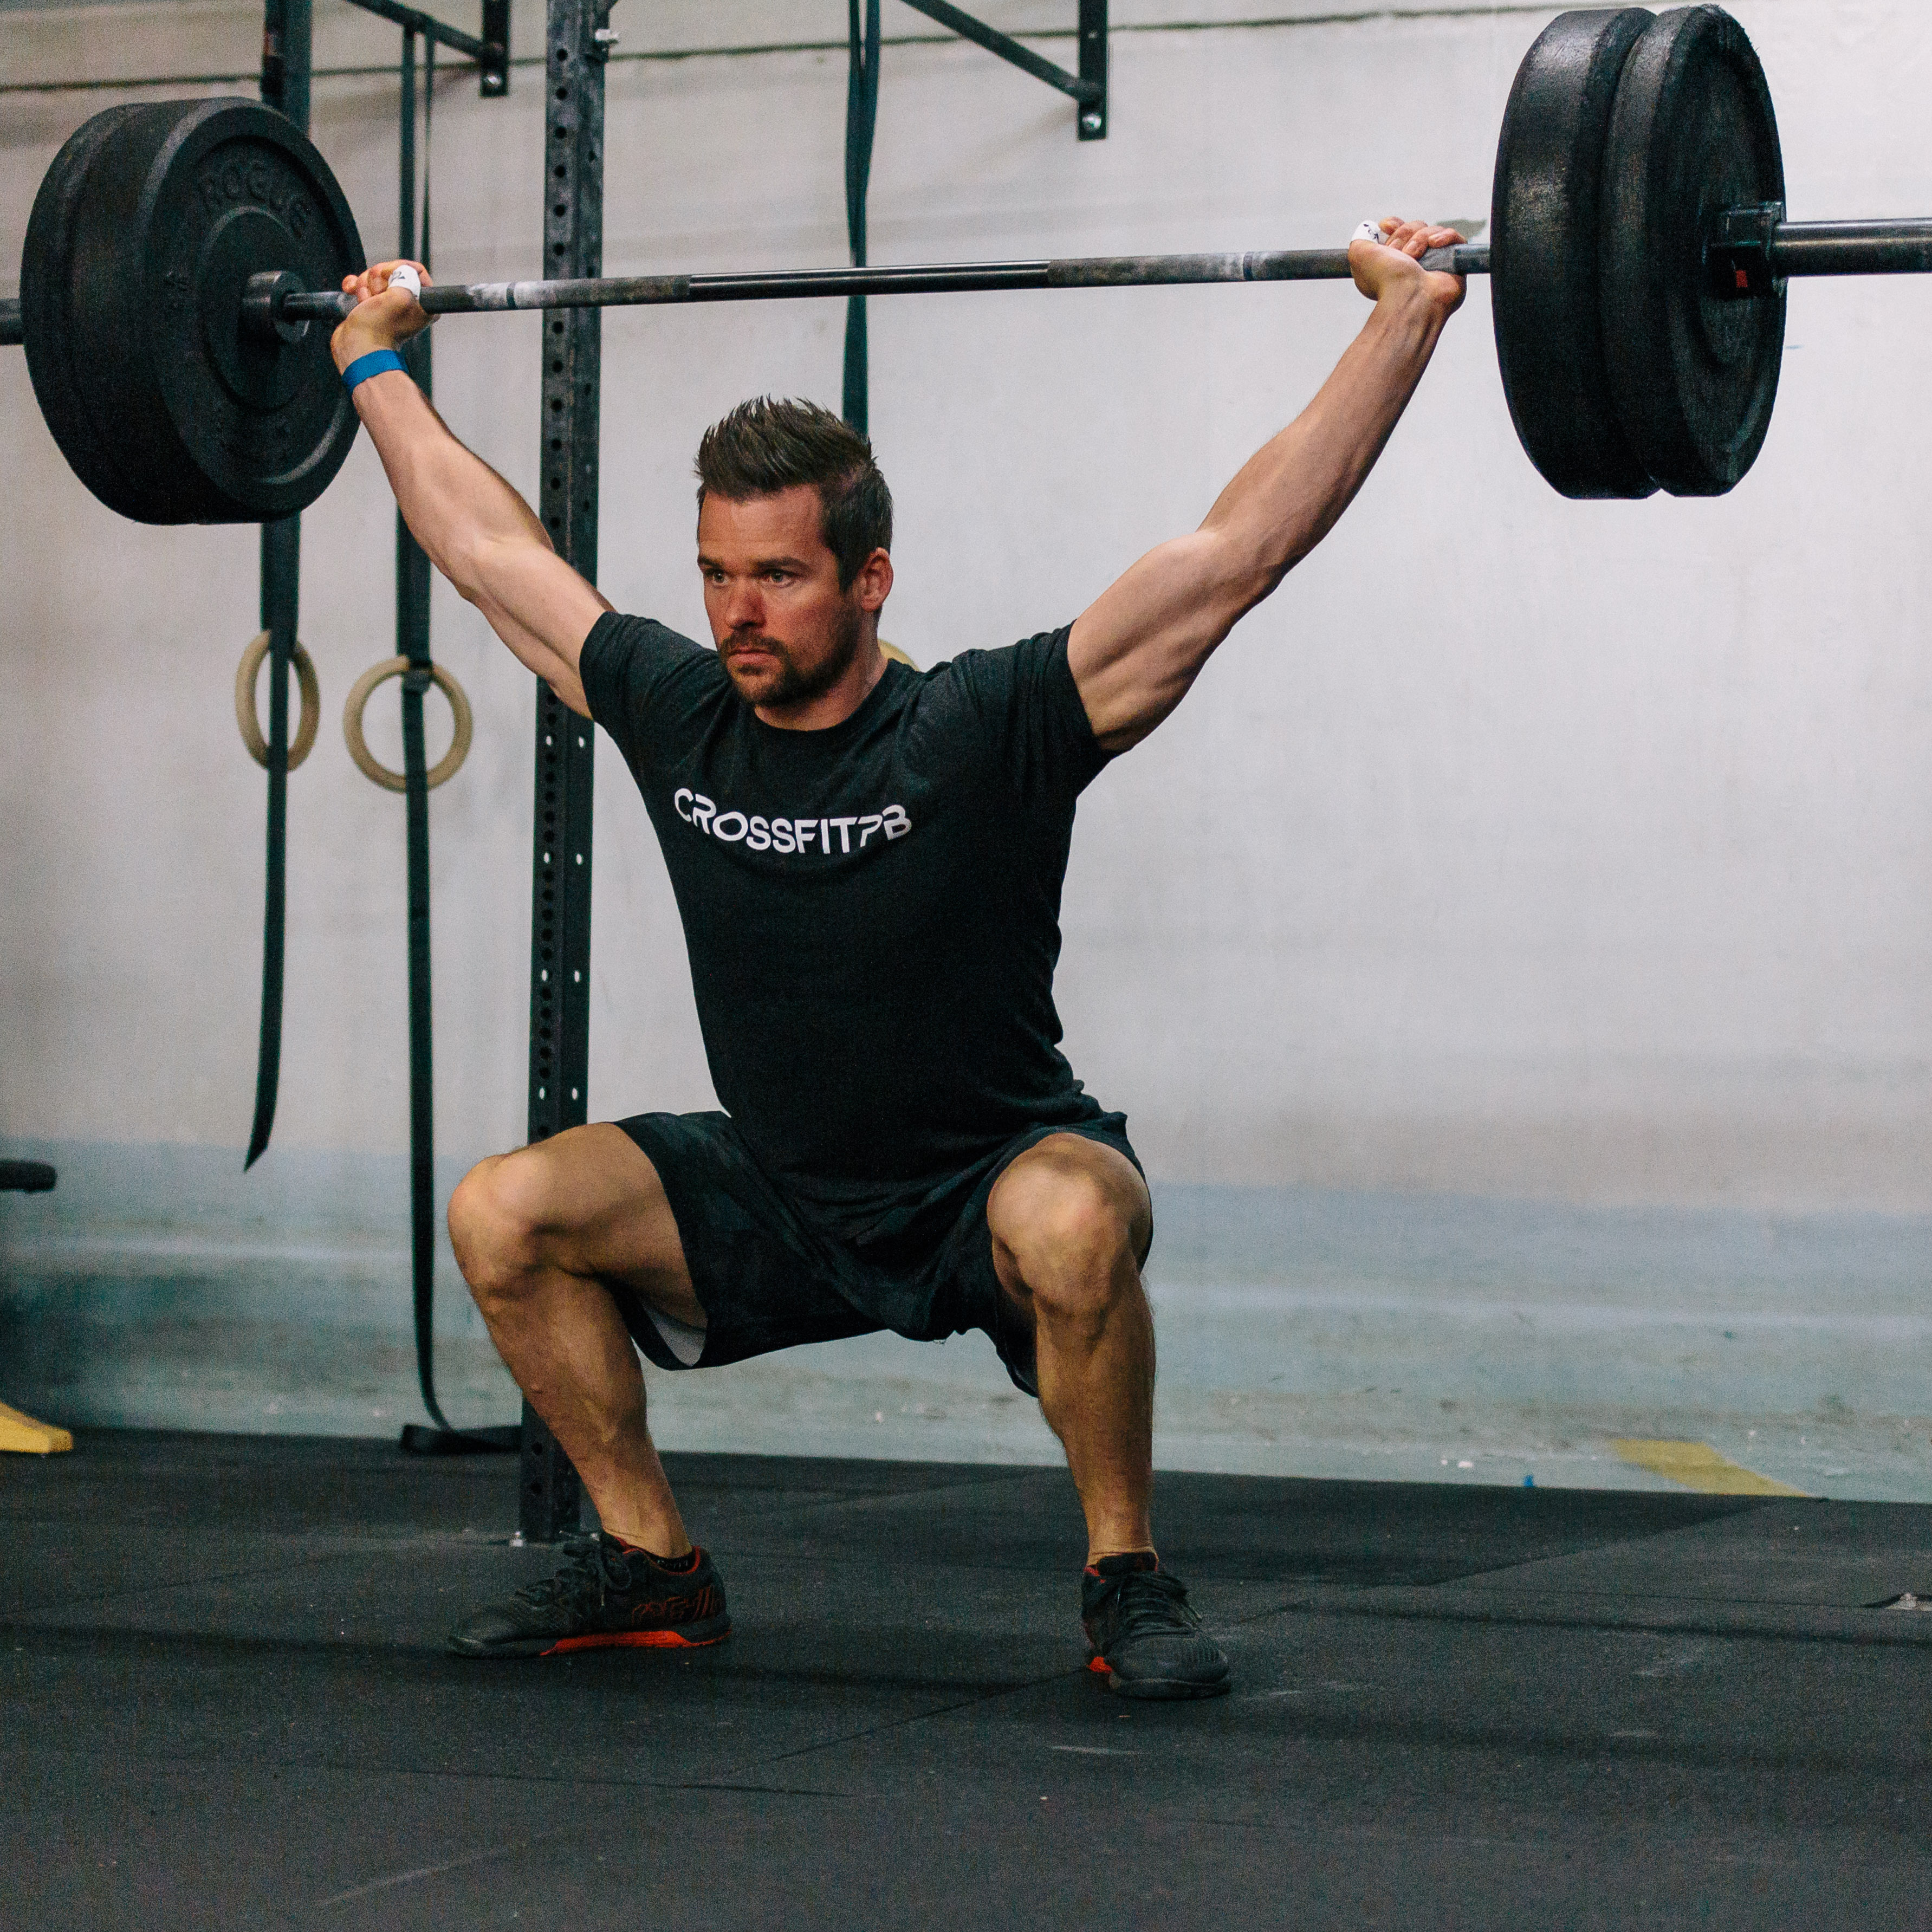 Overhead squat - getting hot